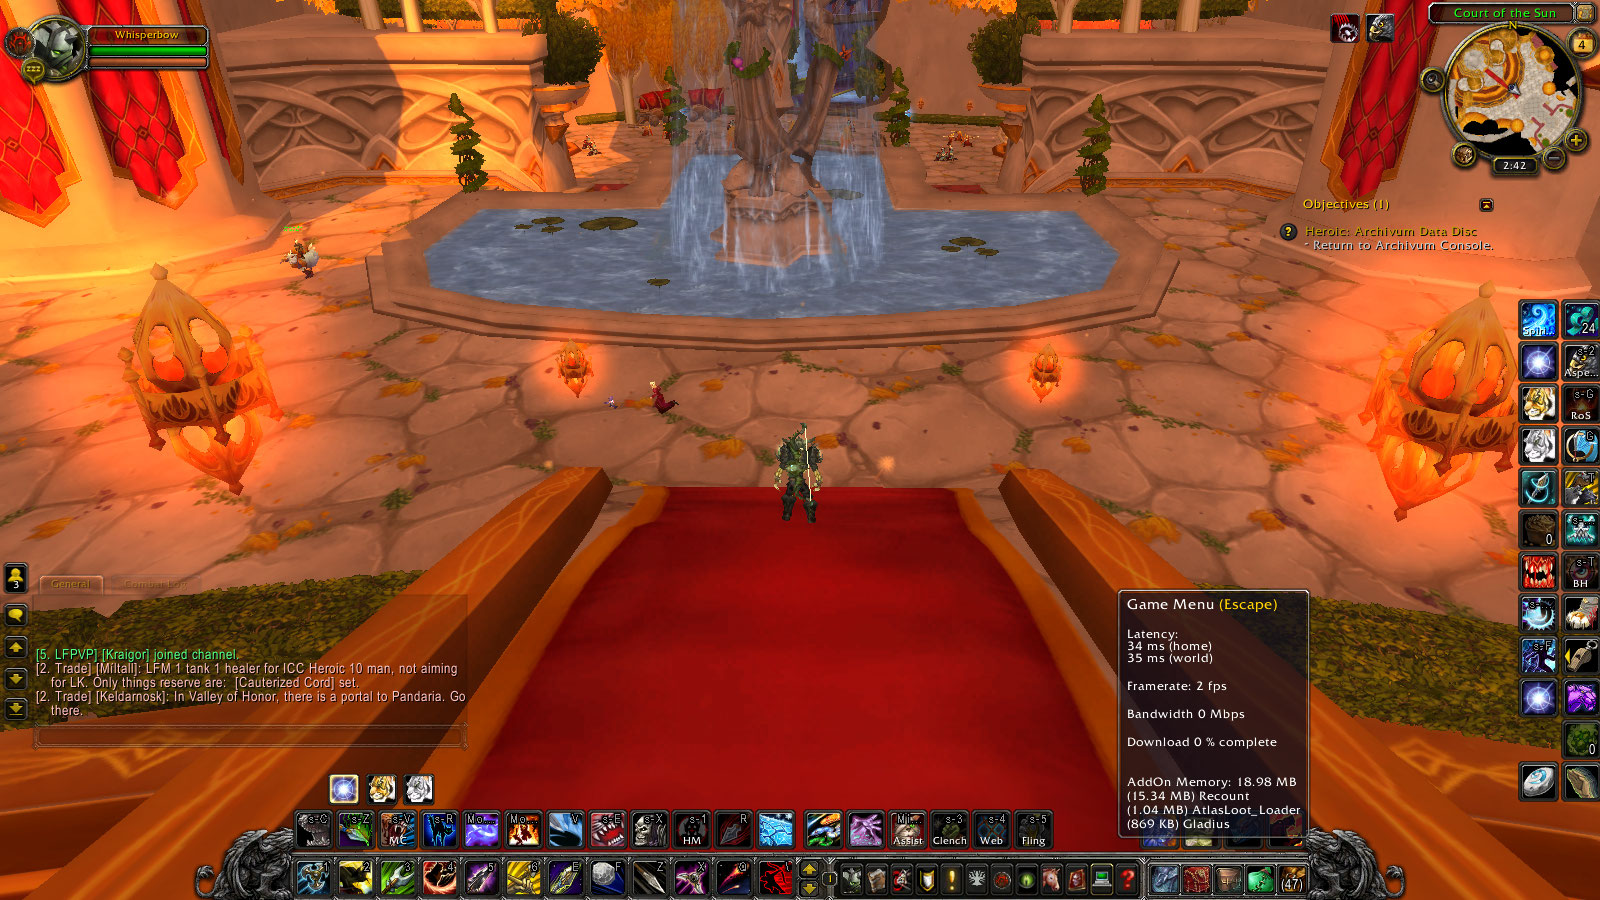 Game FPS Drop in Silvermoon  - World of Warcraft Forums